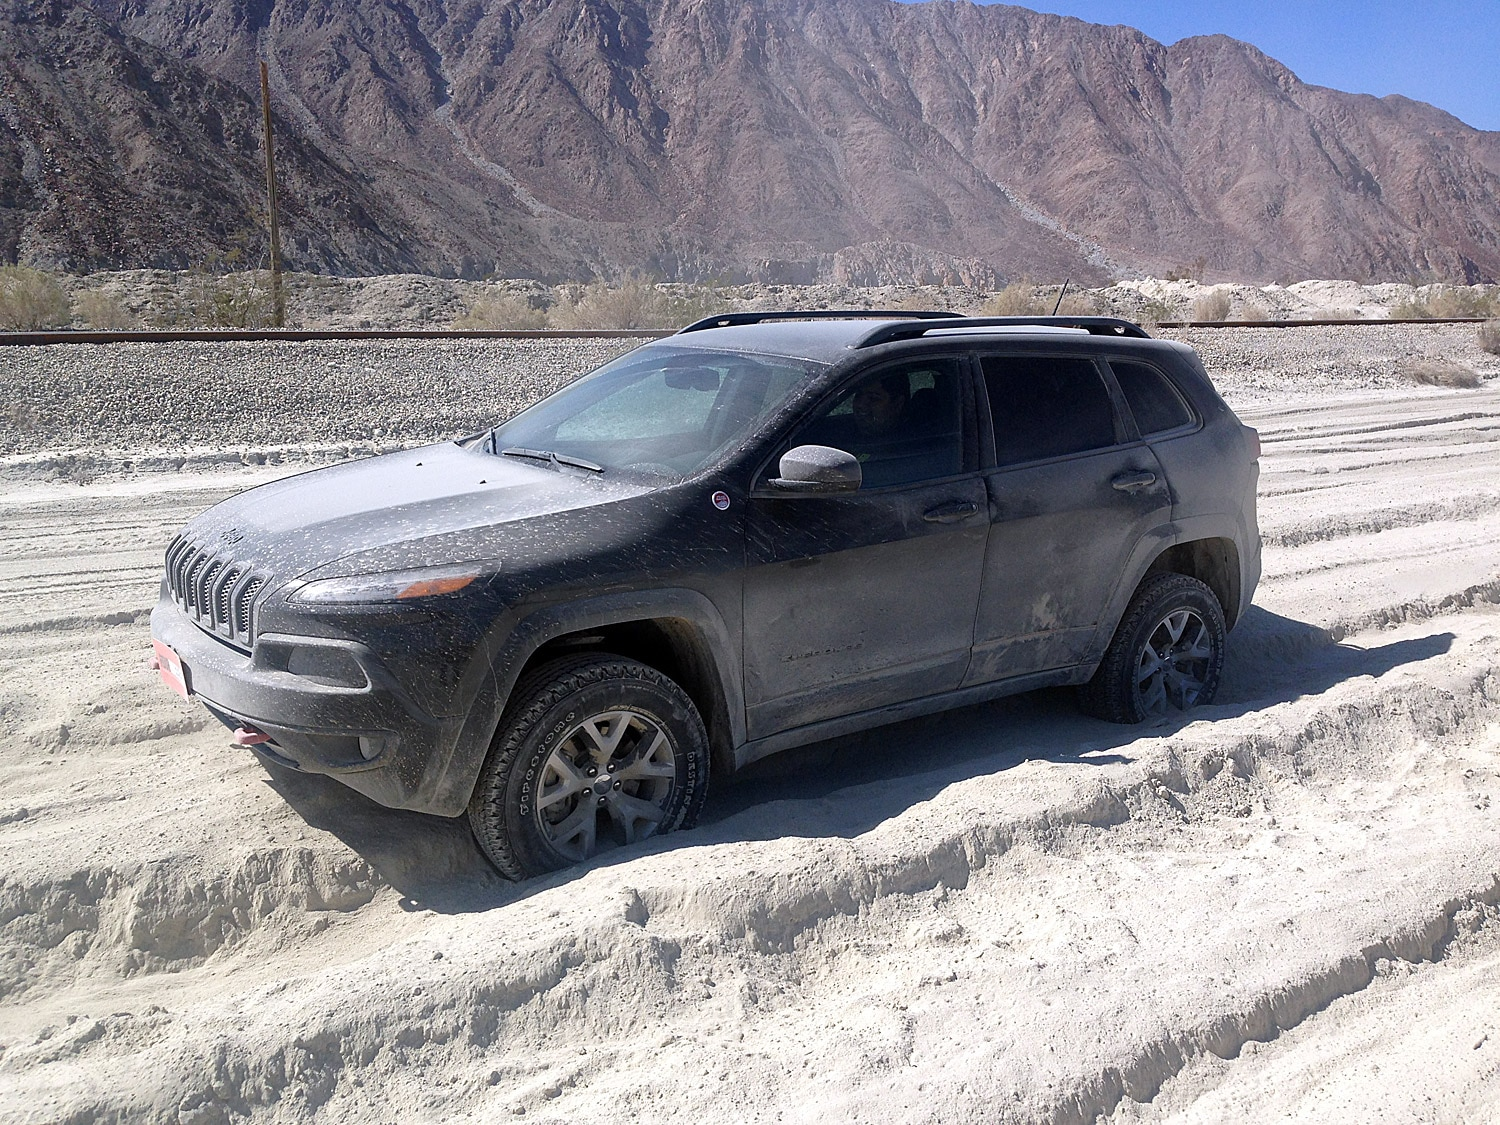 2014 four wheeler of the year day 4 13 2014 jeep cherokee silt